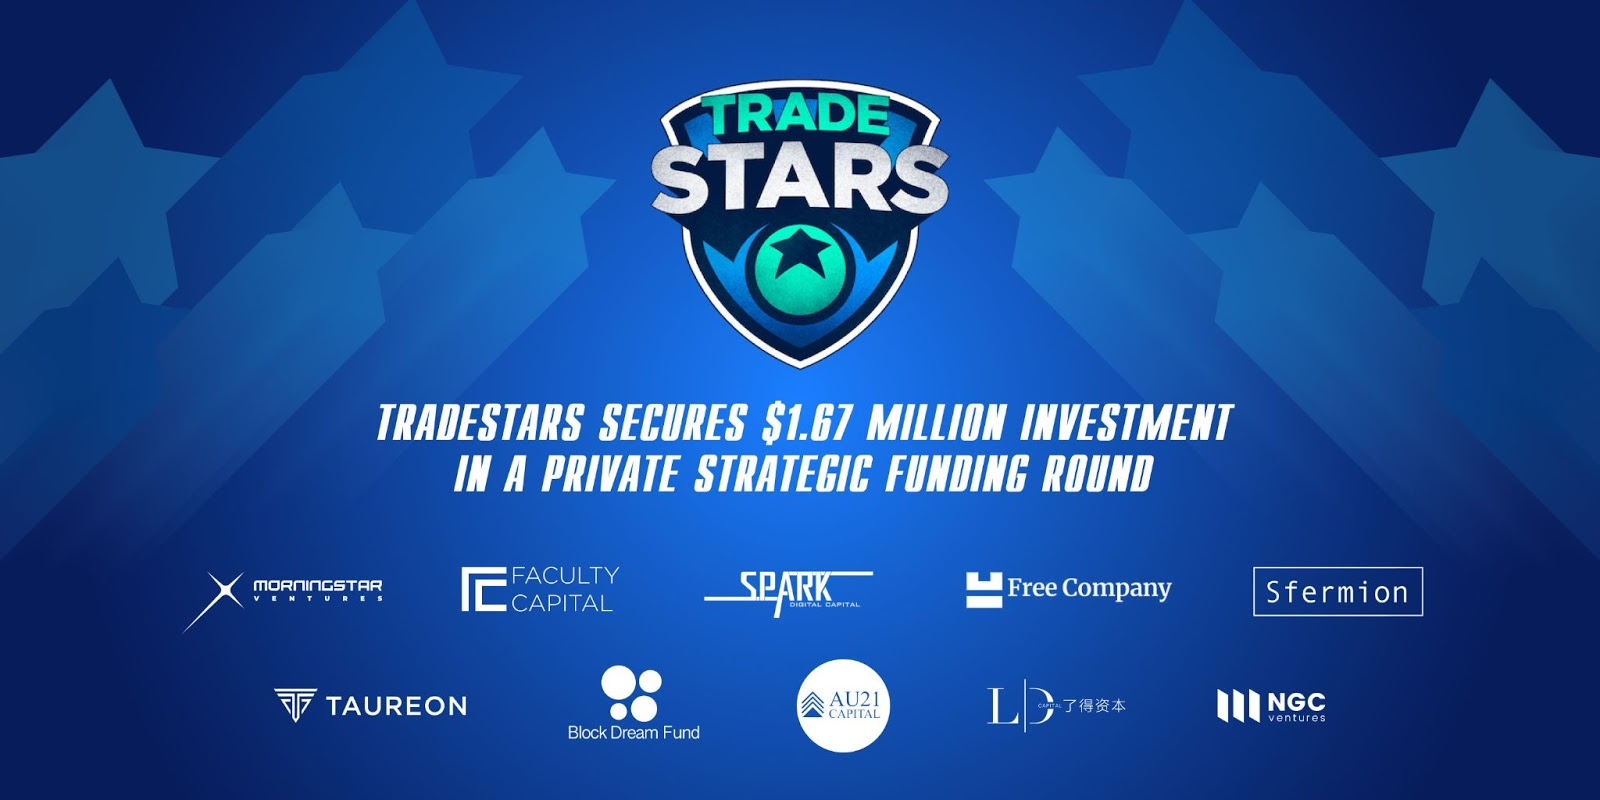 Tradestars secures $1.67 million investment in a private strategic funding round